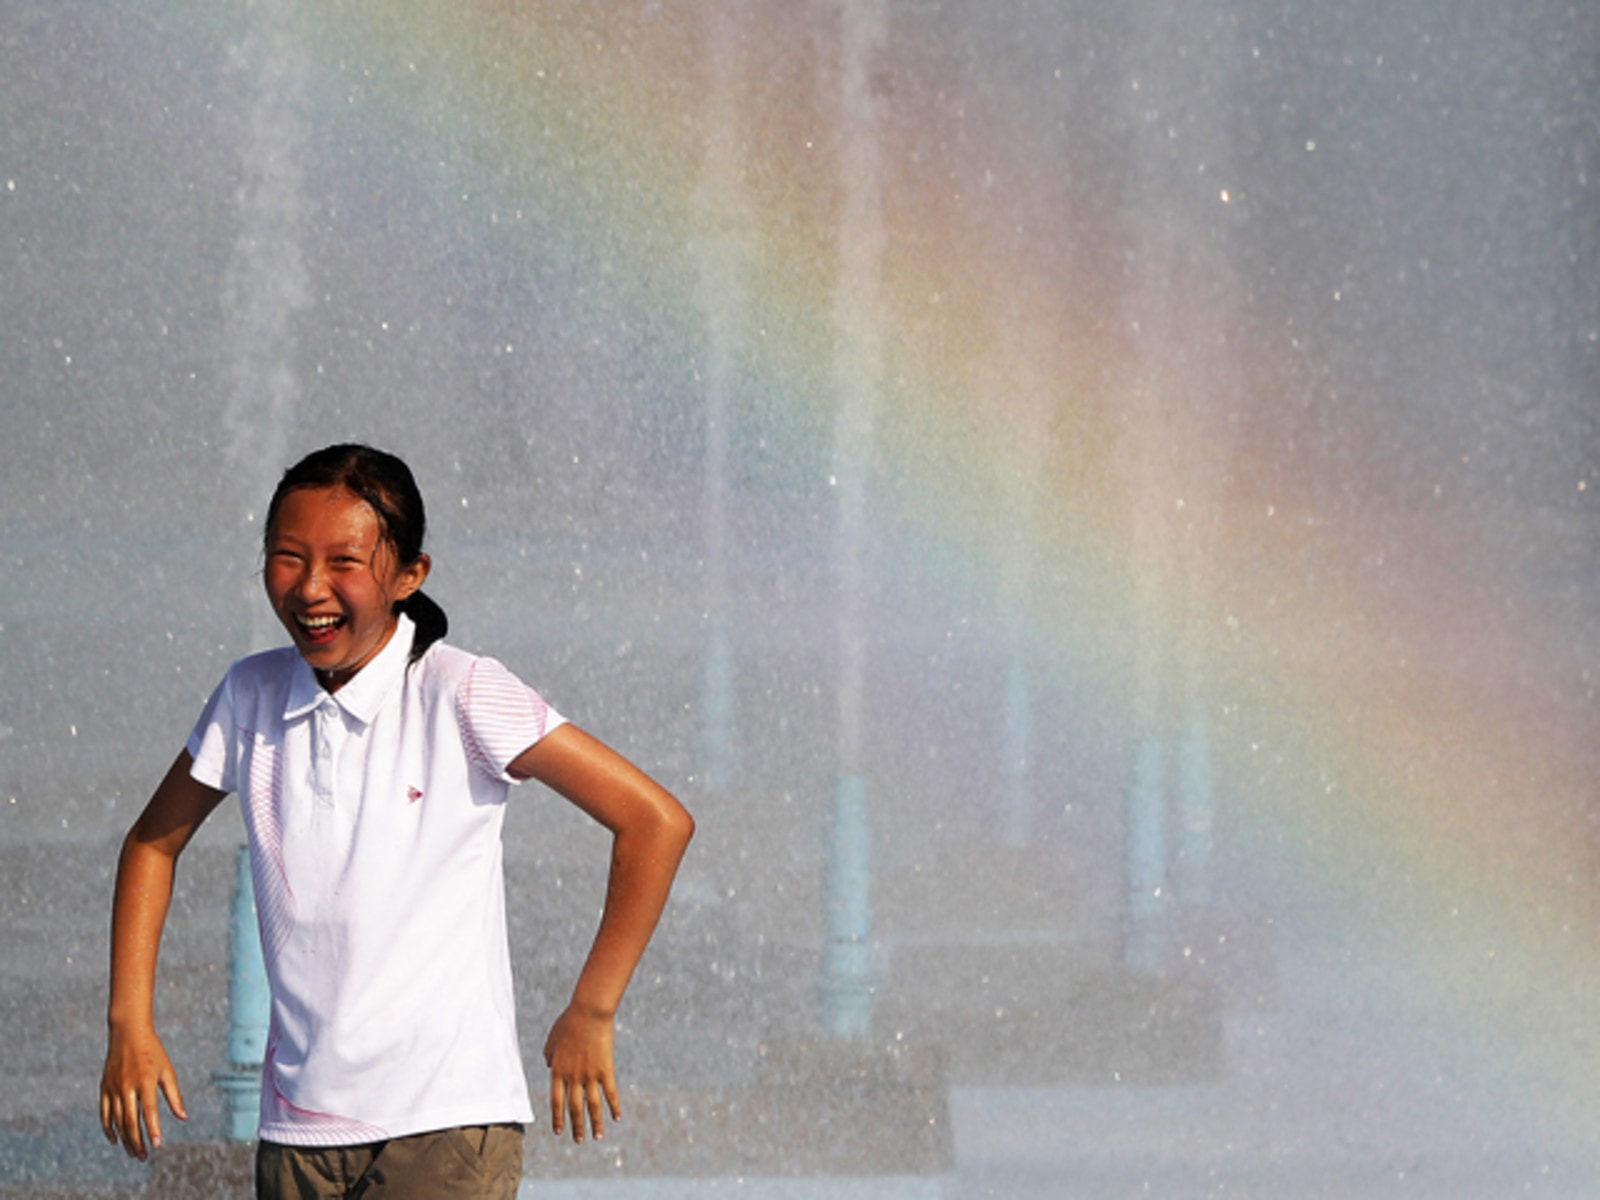 Image: A girl cools off in the Unisphere fountain at the Flushing Meadows-Corona Park as a rainbow streaks across the water in the Queens borough of New York